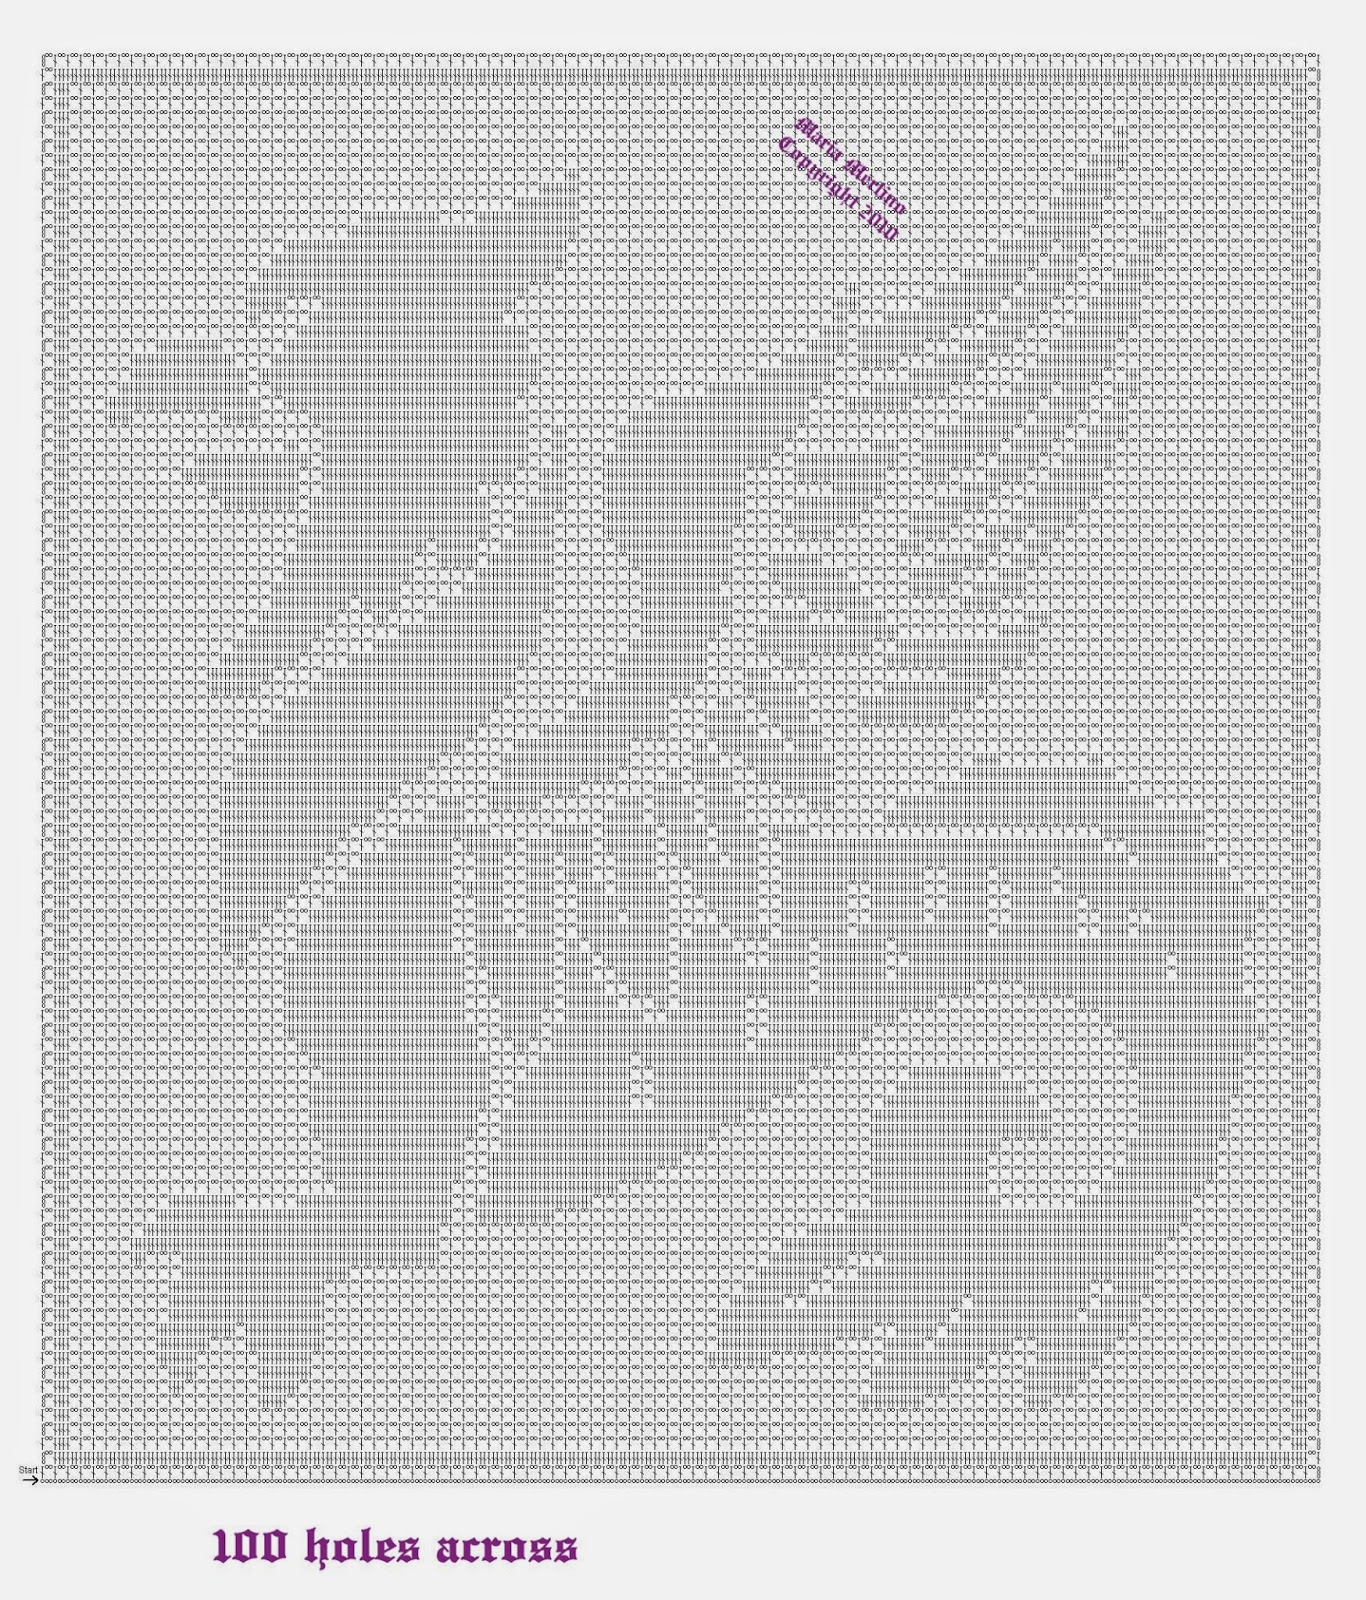 Filet Crochet: Crochet Filet Medieval Gryphon Dragon